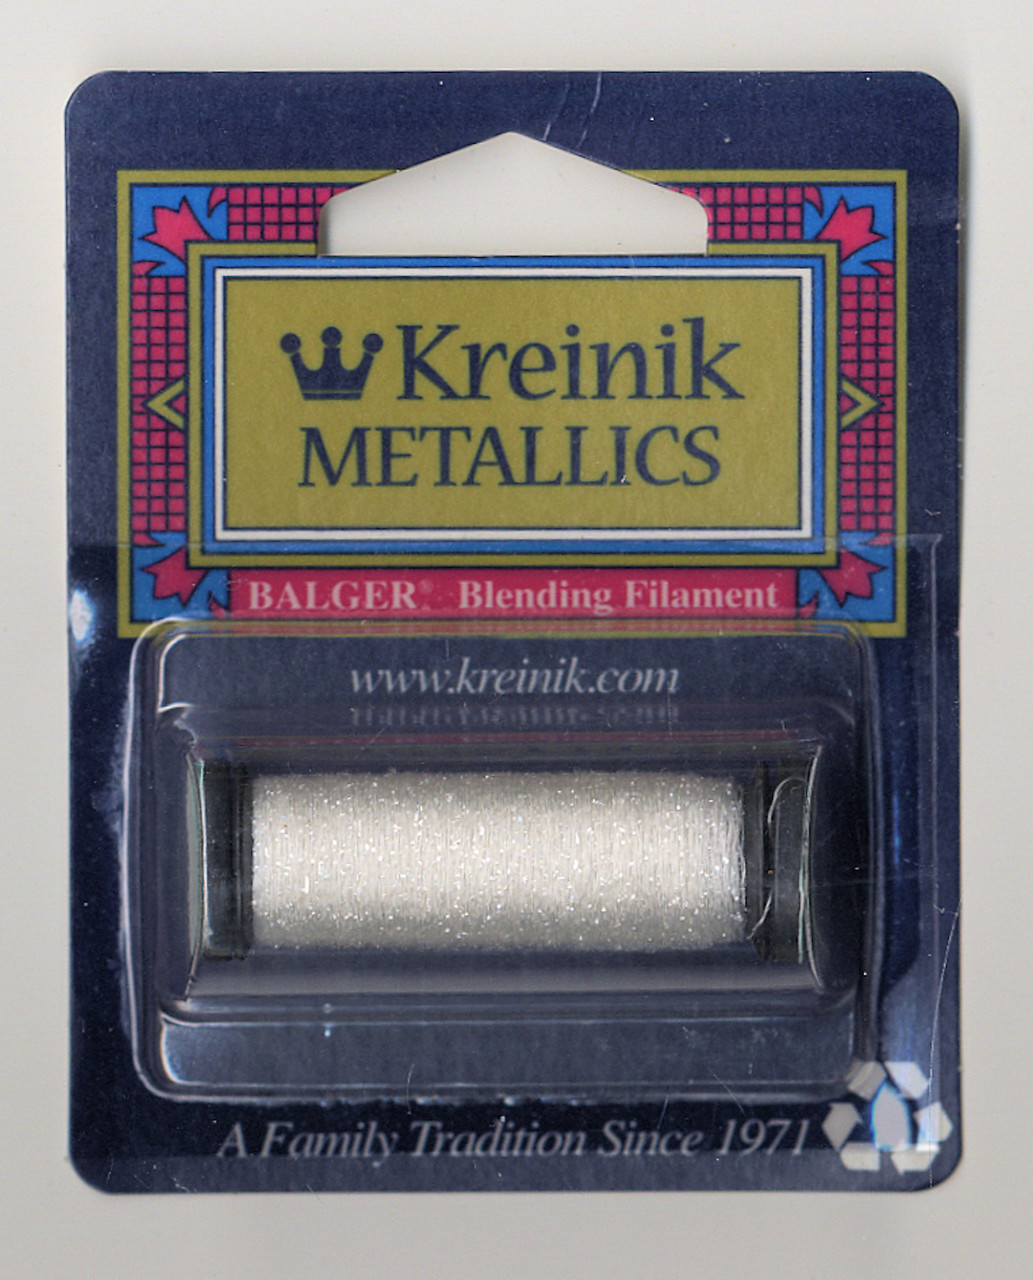 Kreinik Metallics Blending Filament - White #100